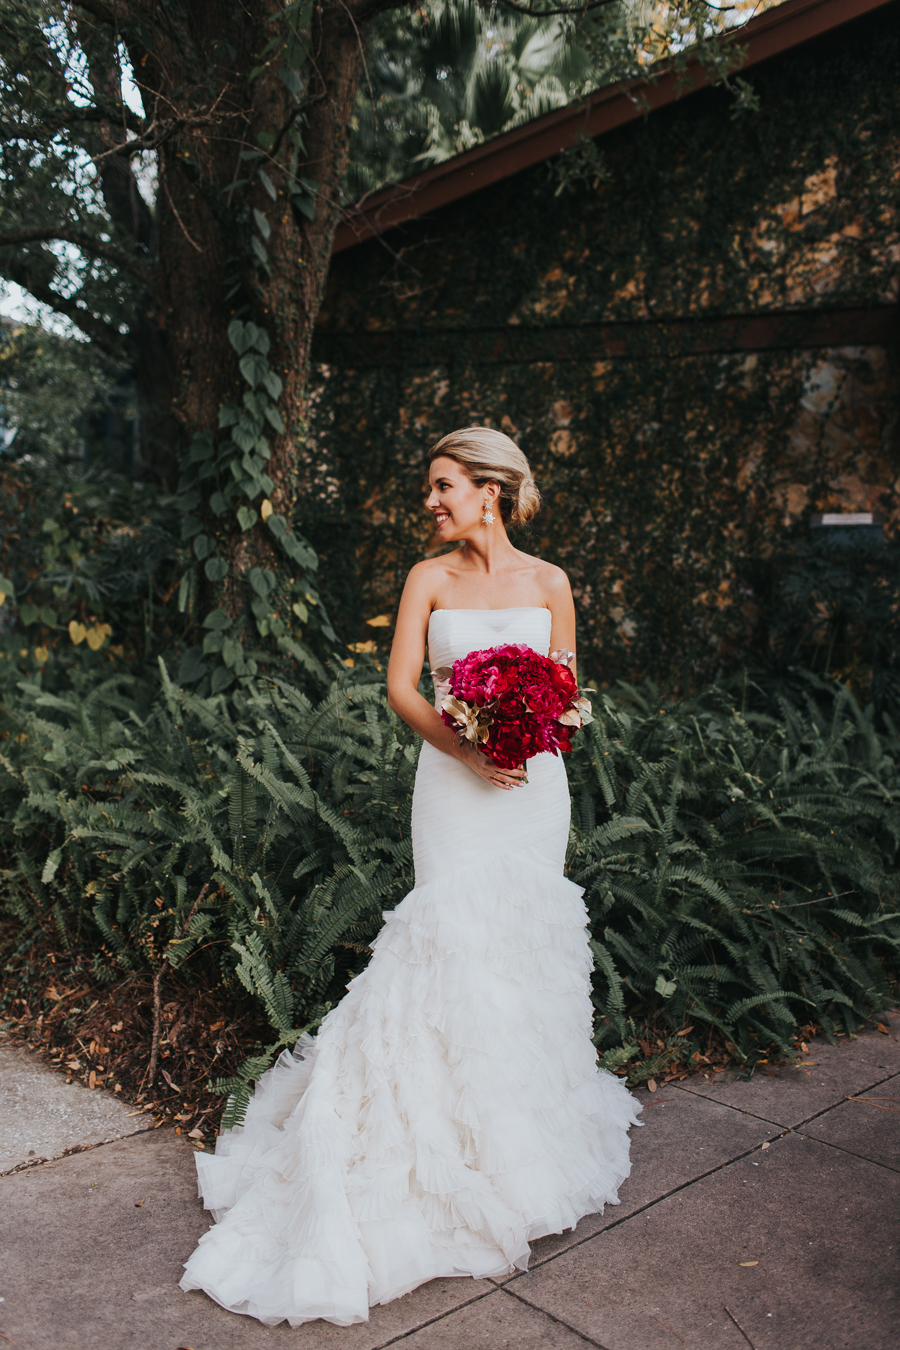 Loren and Alex Kuznetsov Gold and Burgundy wedding at Epicurean Tampa Royal Fall Wedding in Tampa Florida Inside Weddings MD Events Tampa-127.jpg